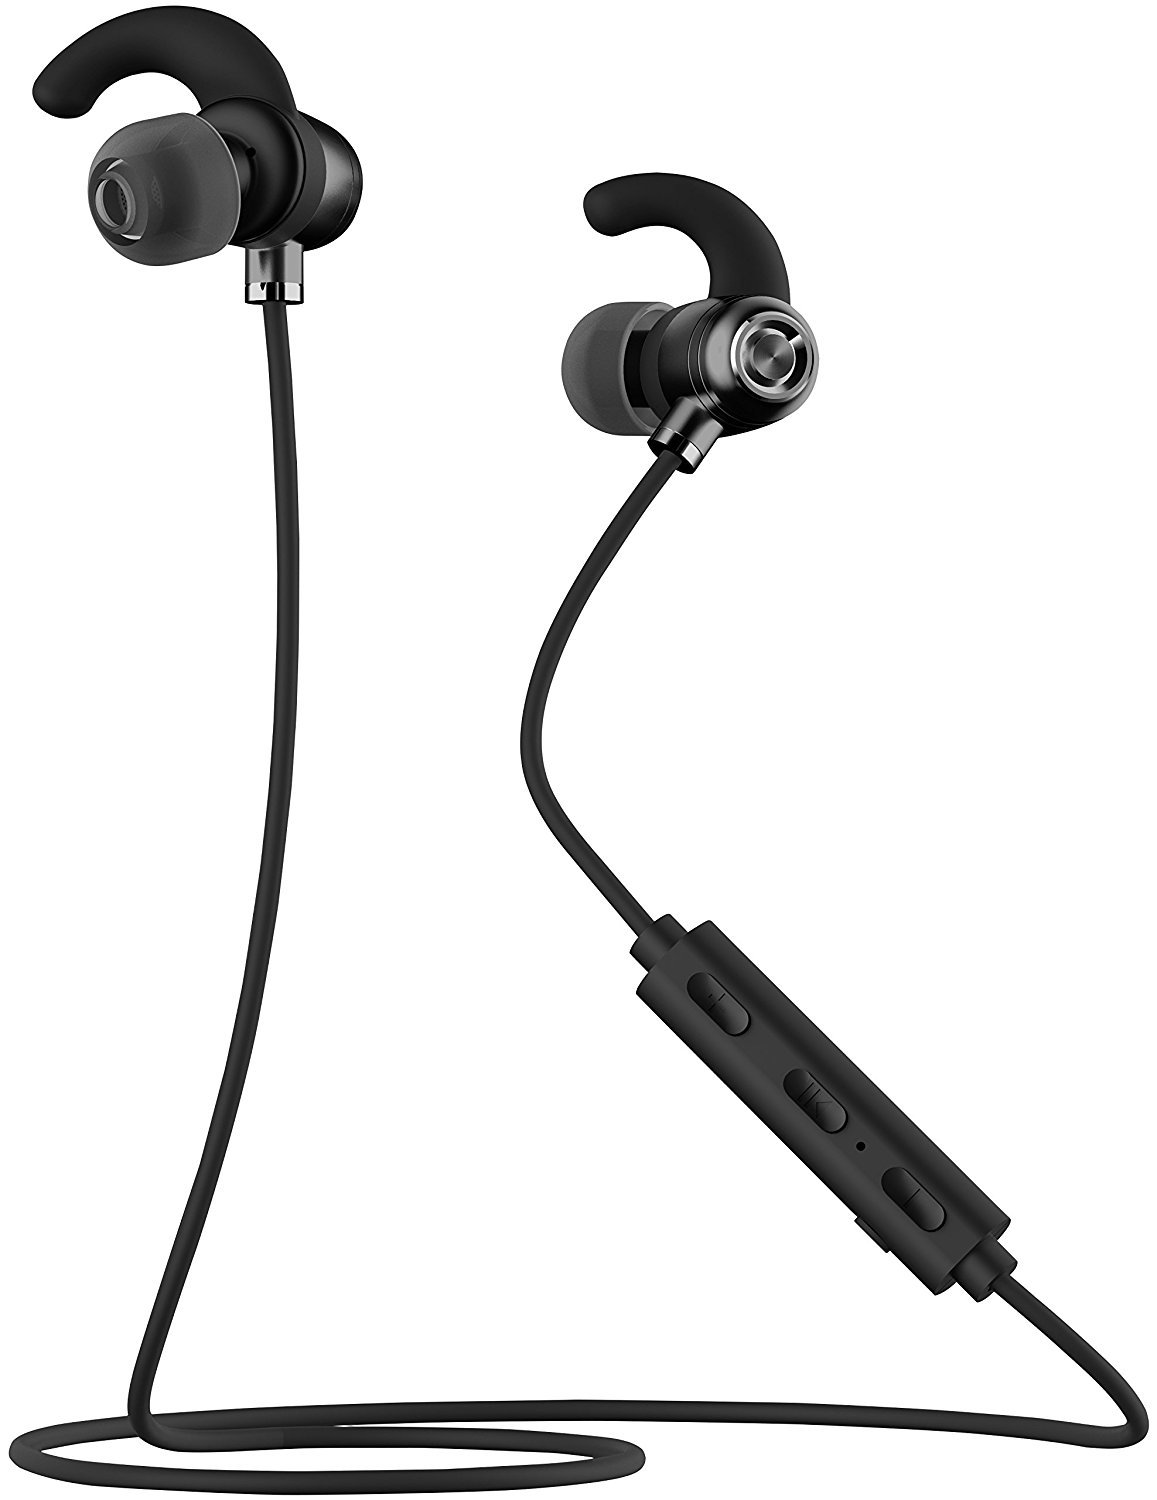 truwire Samsung Galaxy Core Plus Bluetooth Headset in-Ear Running Earbuds IPX4 Waterproof with Mic Stereo Earphones, CVC 6.0 Noise Cancellation, Works with, Apple, Samsung,Google Pixel,LG by truwire (Image #1)